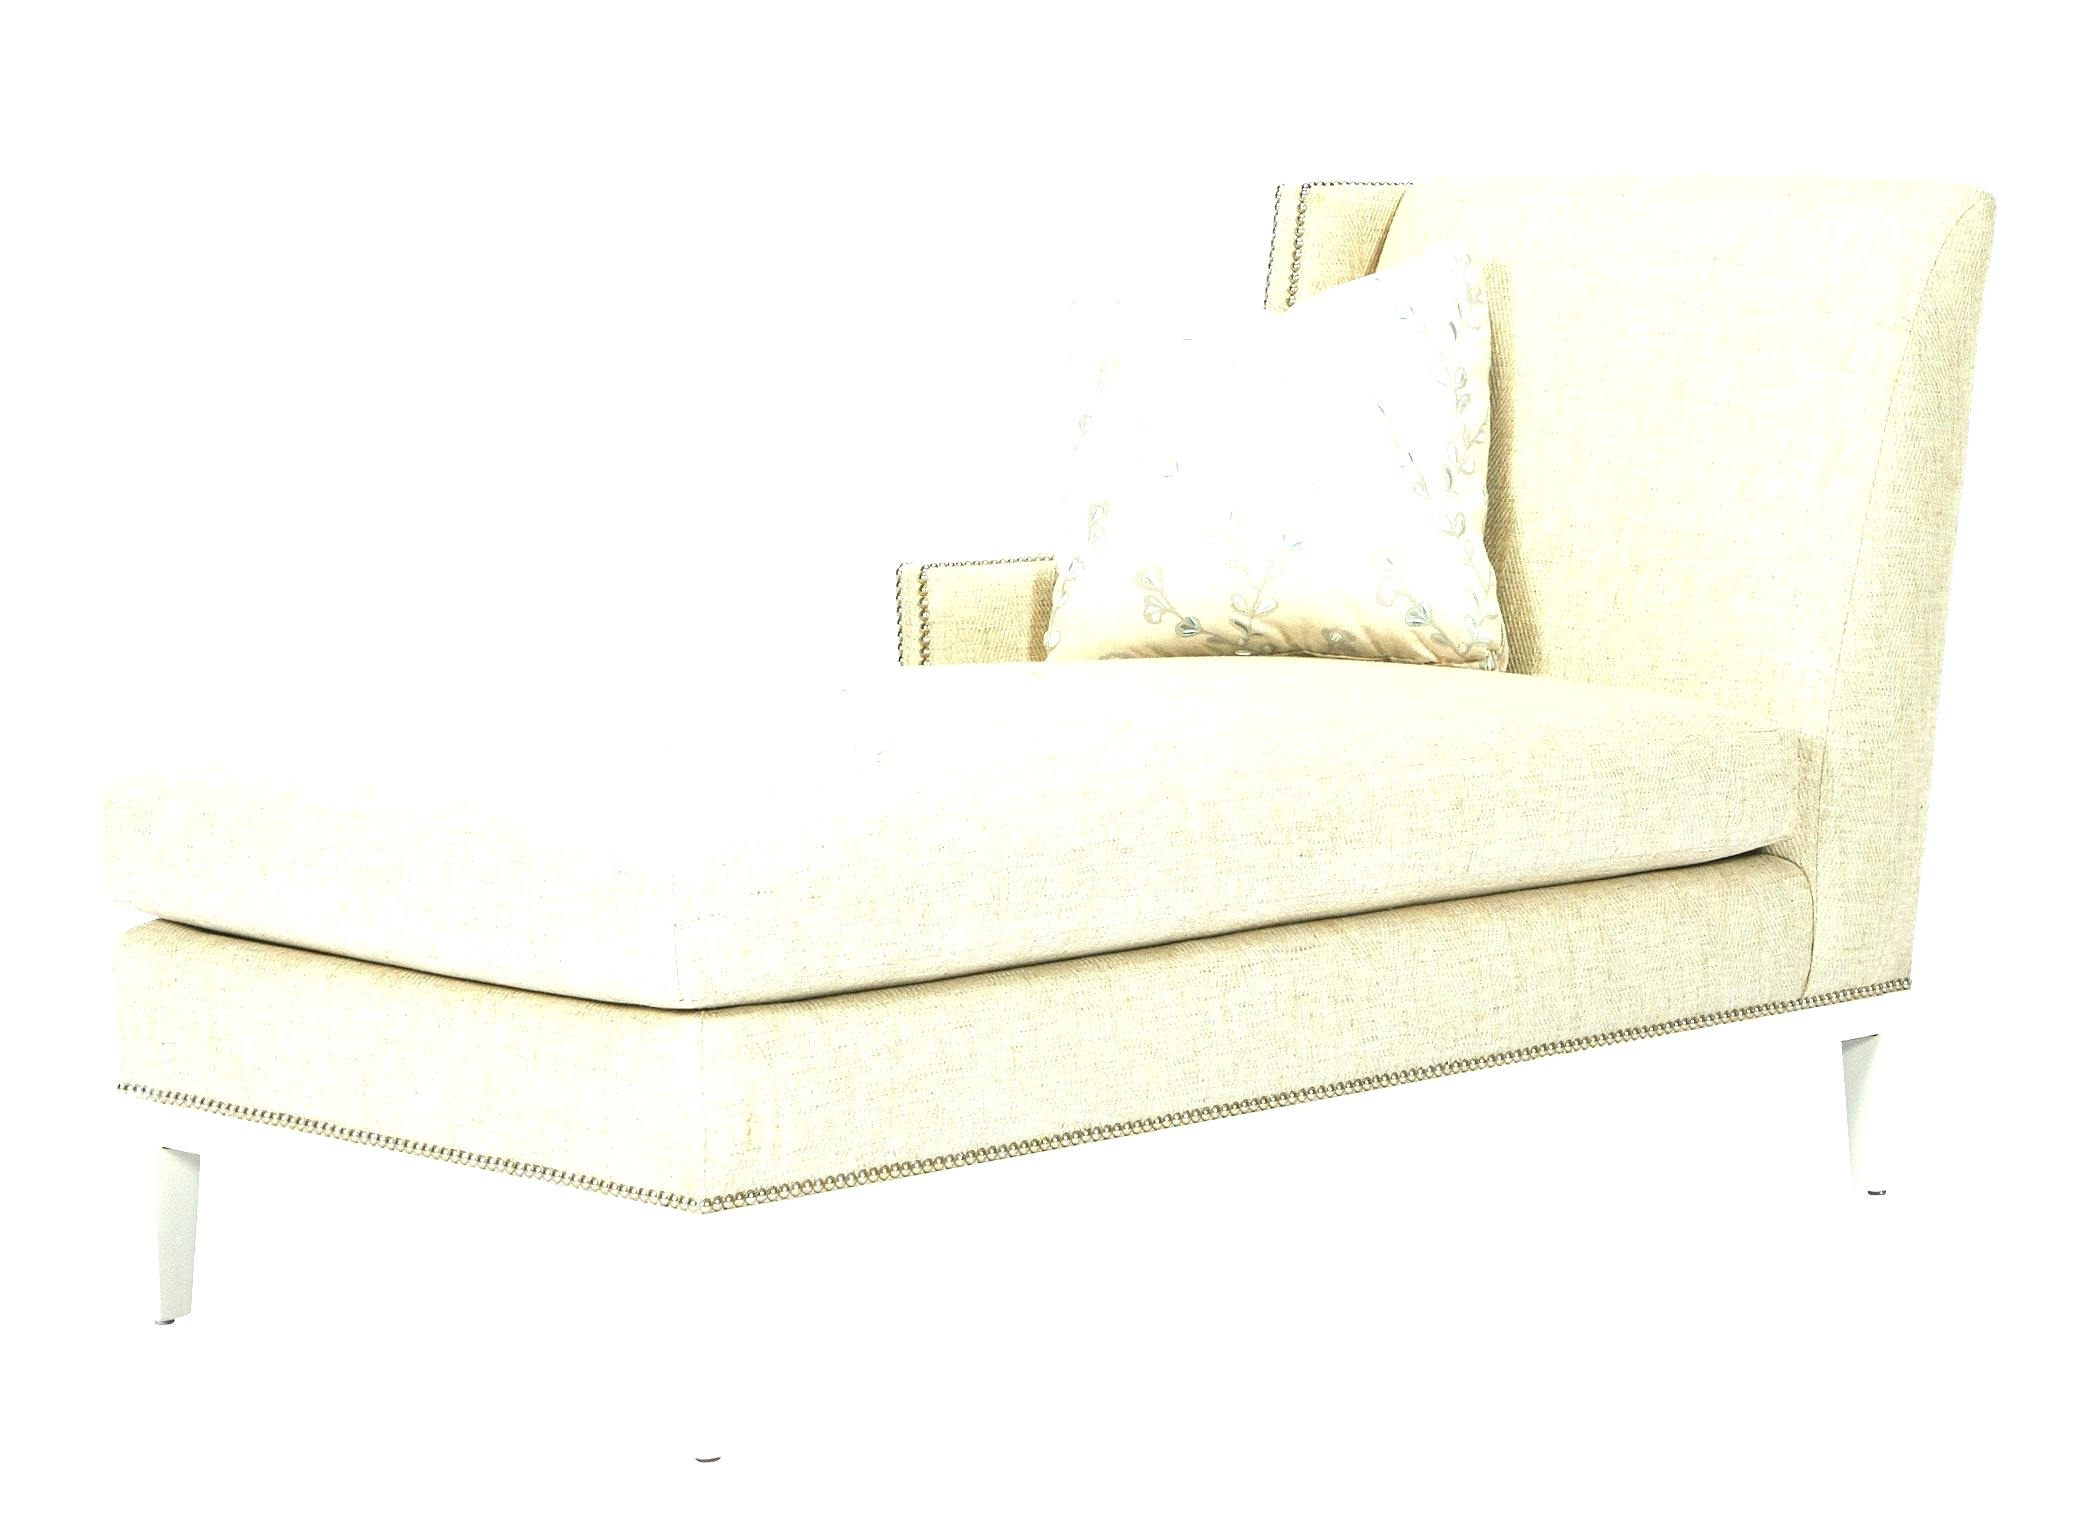 Widely Used Slipcovers For Chaise Lounge Slipcover Sectional With Arms Chairs Pertaining To Chaise Lounge Chairs With Arms Slipcover (View 15 of 15)